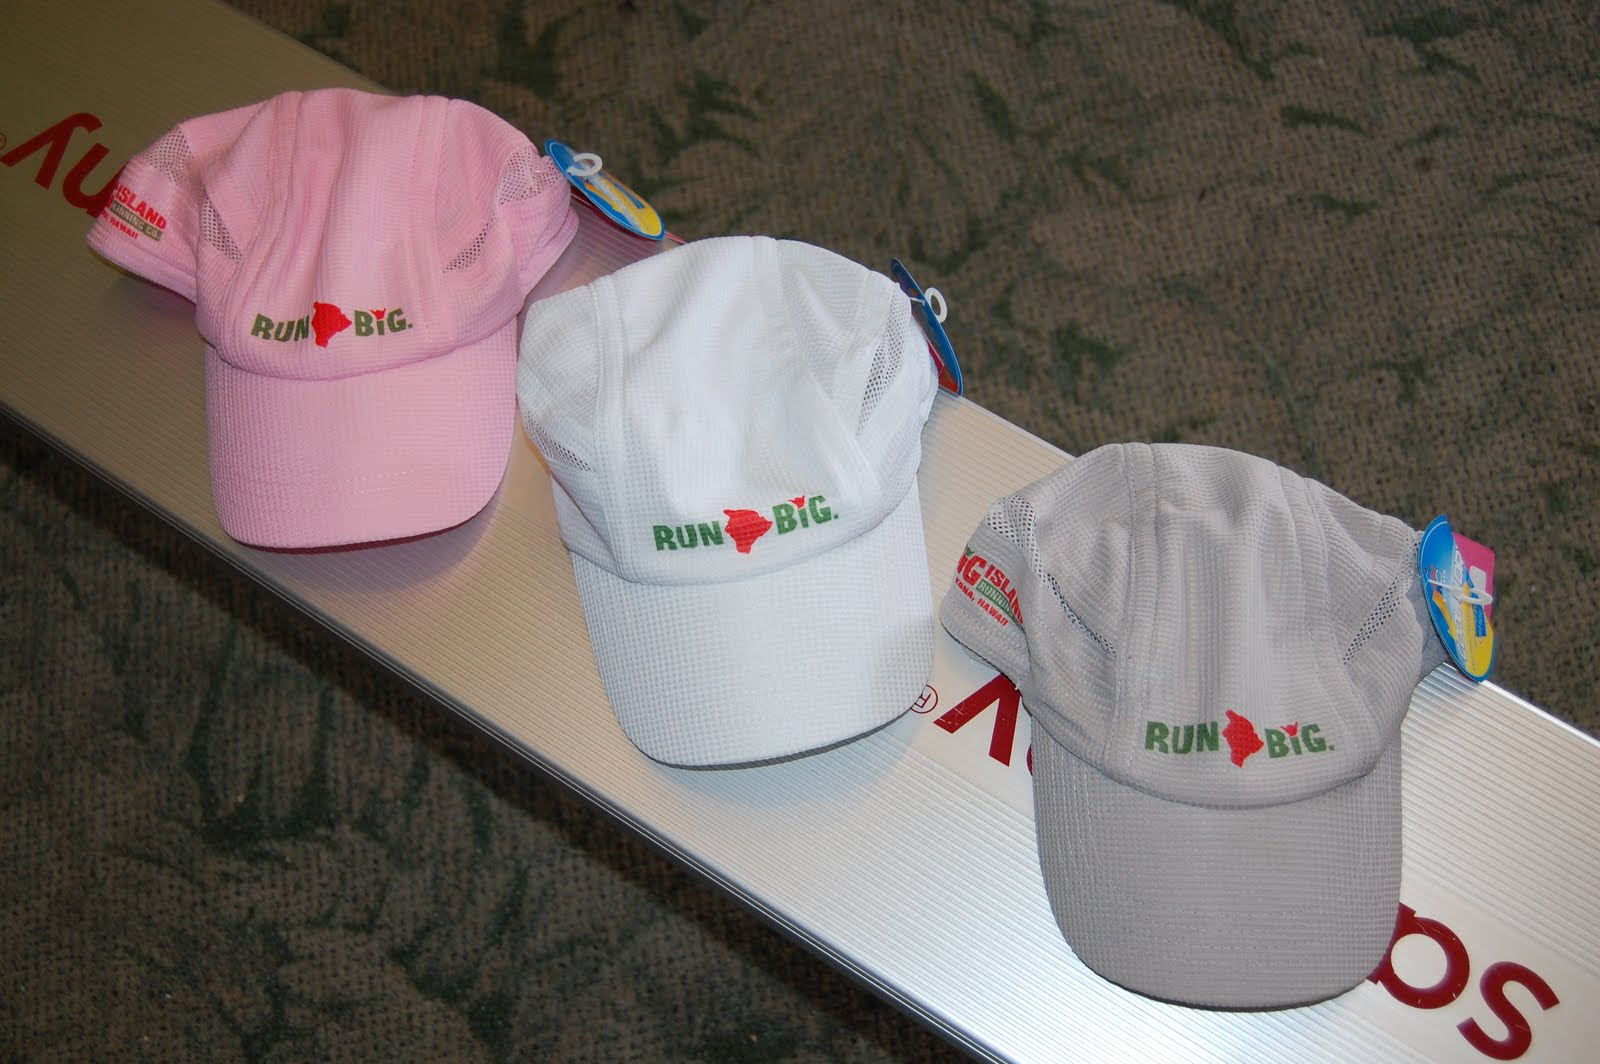 These lightweight running hats are made by KC Caps with a moisture-wicking  fabric to keep you cool. They come in three colors - white 874a8b94518